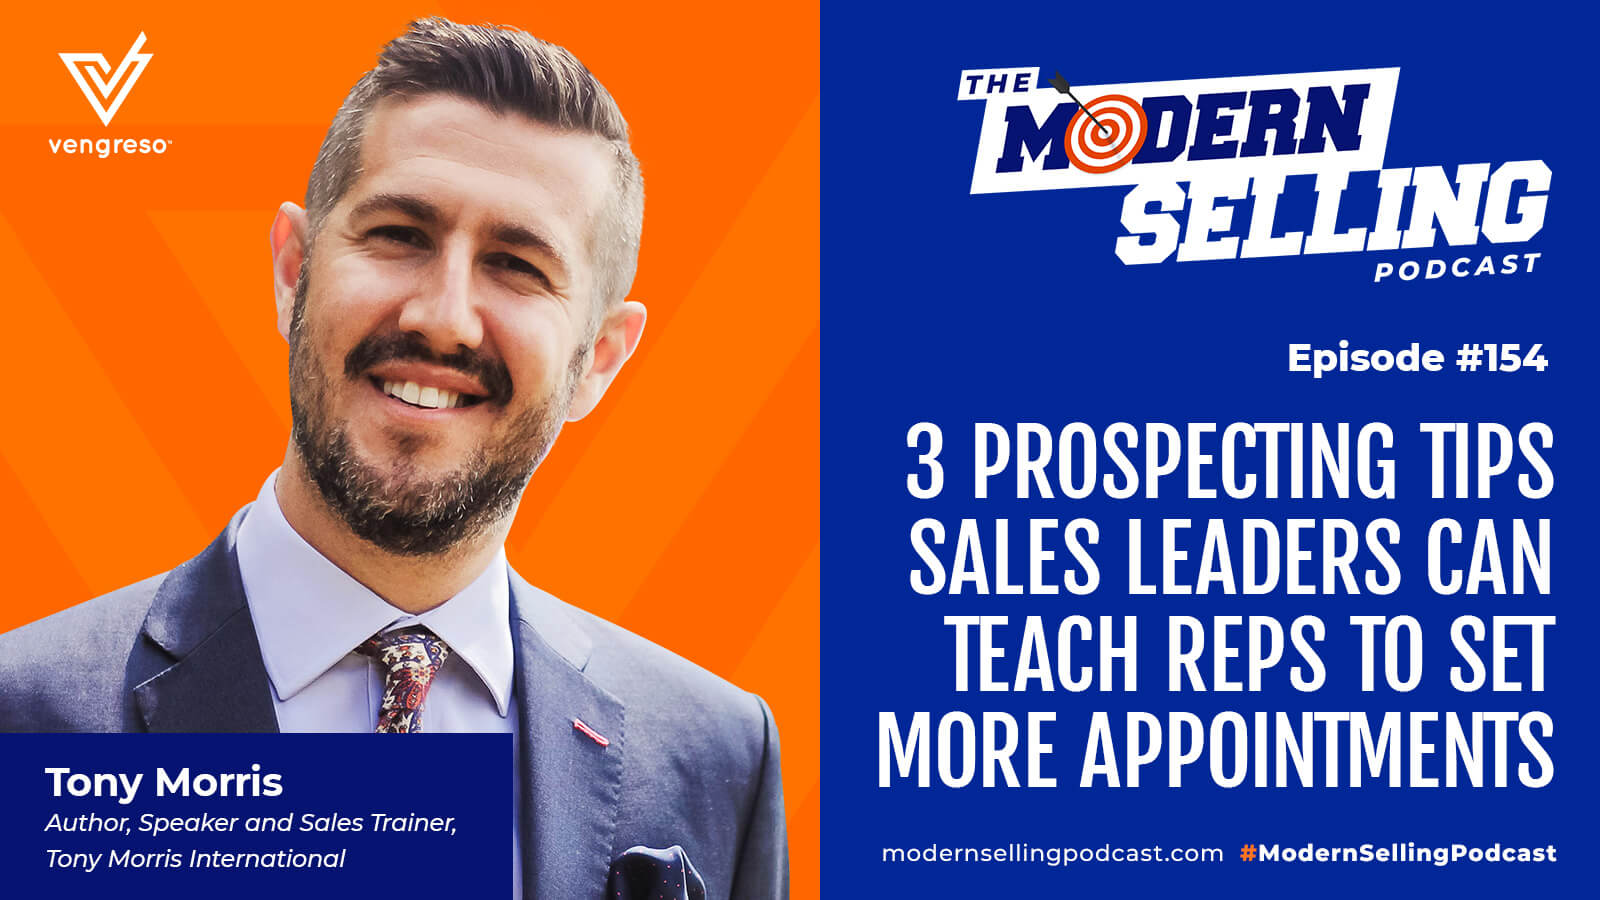 Prospecting tips Tony Morris